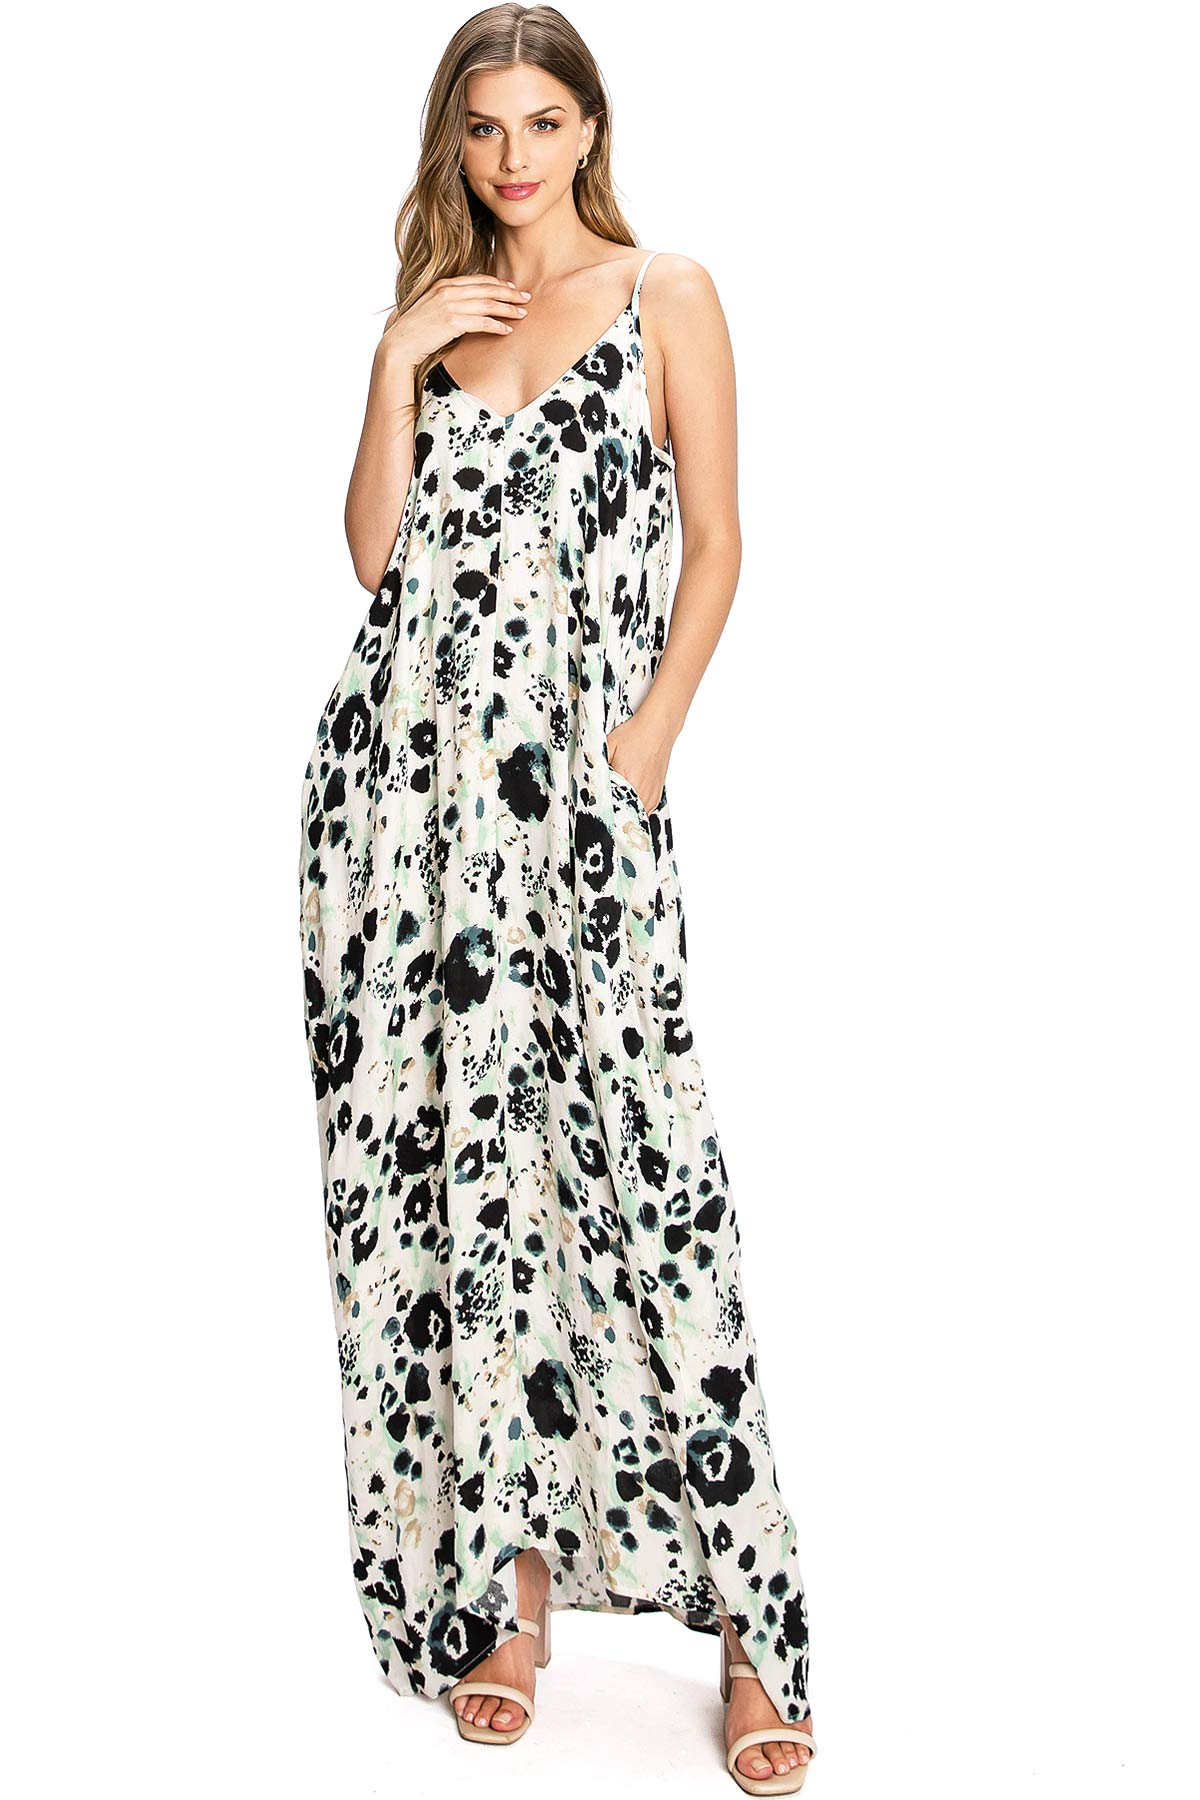 Image of Spotted Maxi Dress